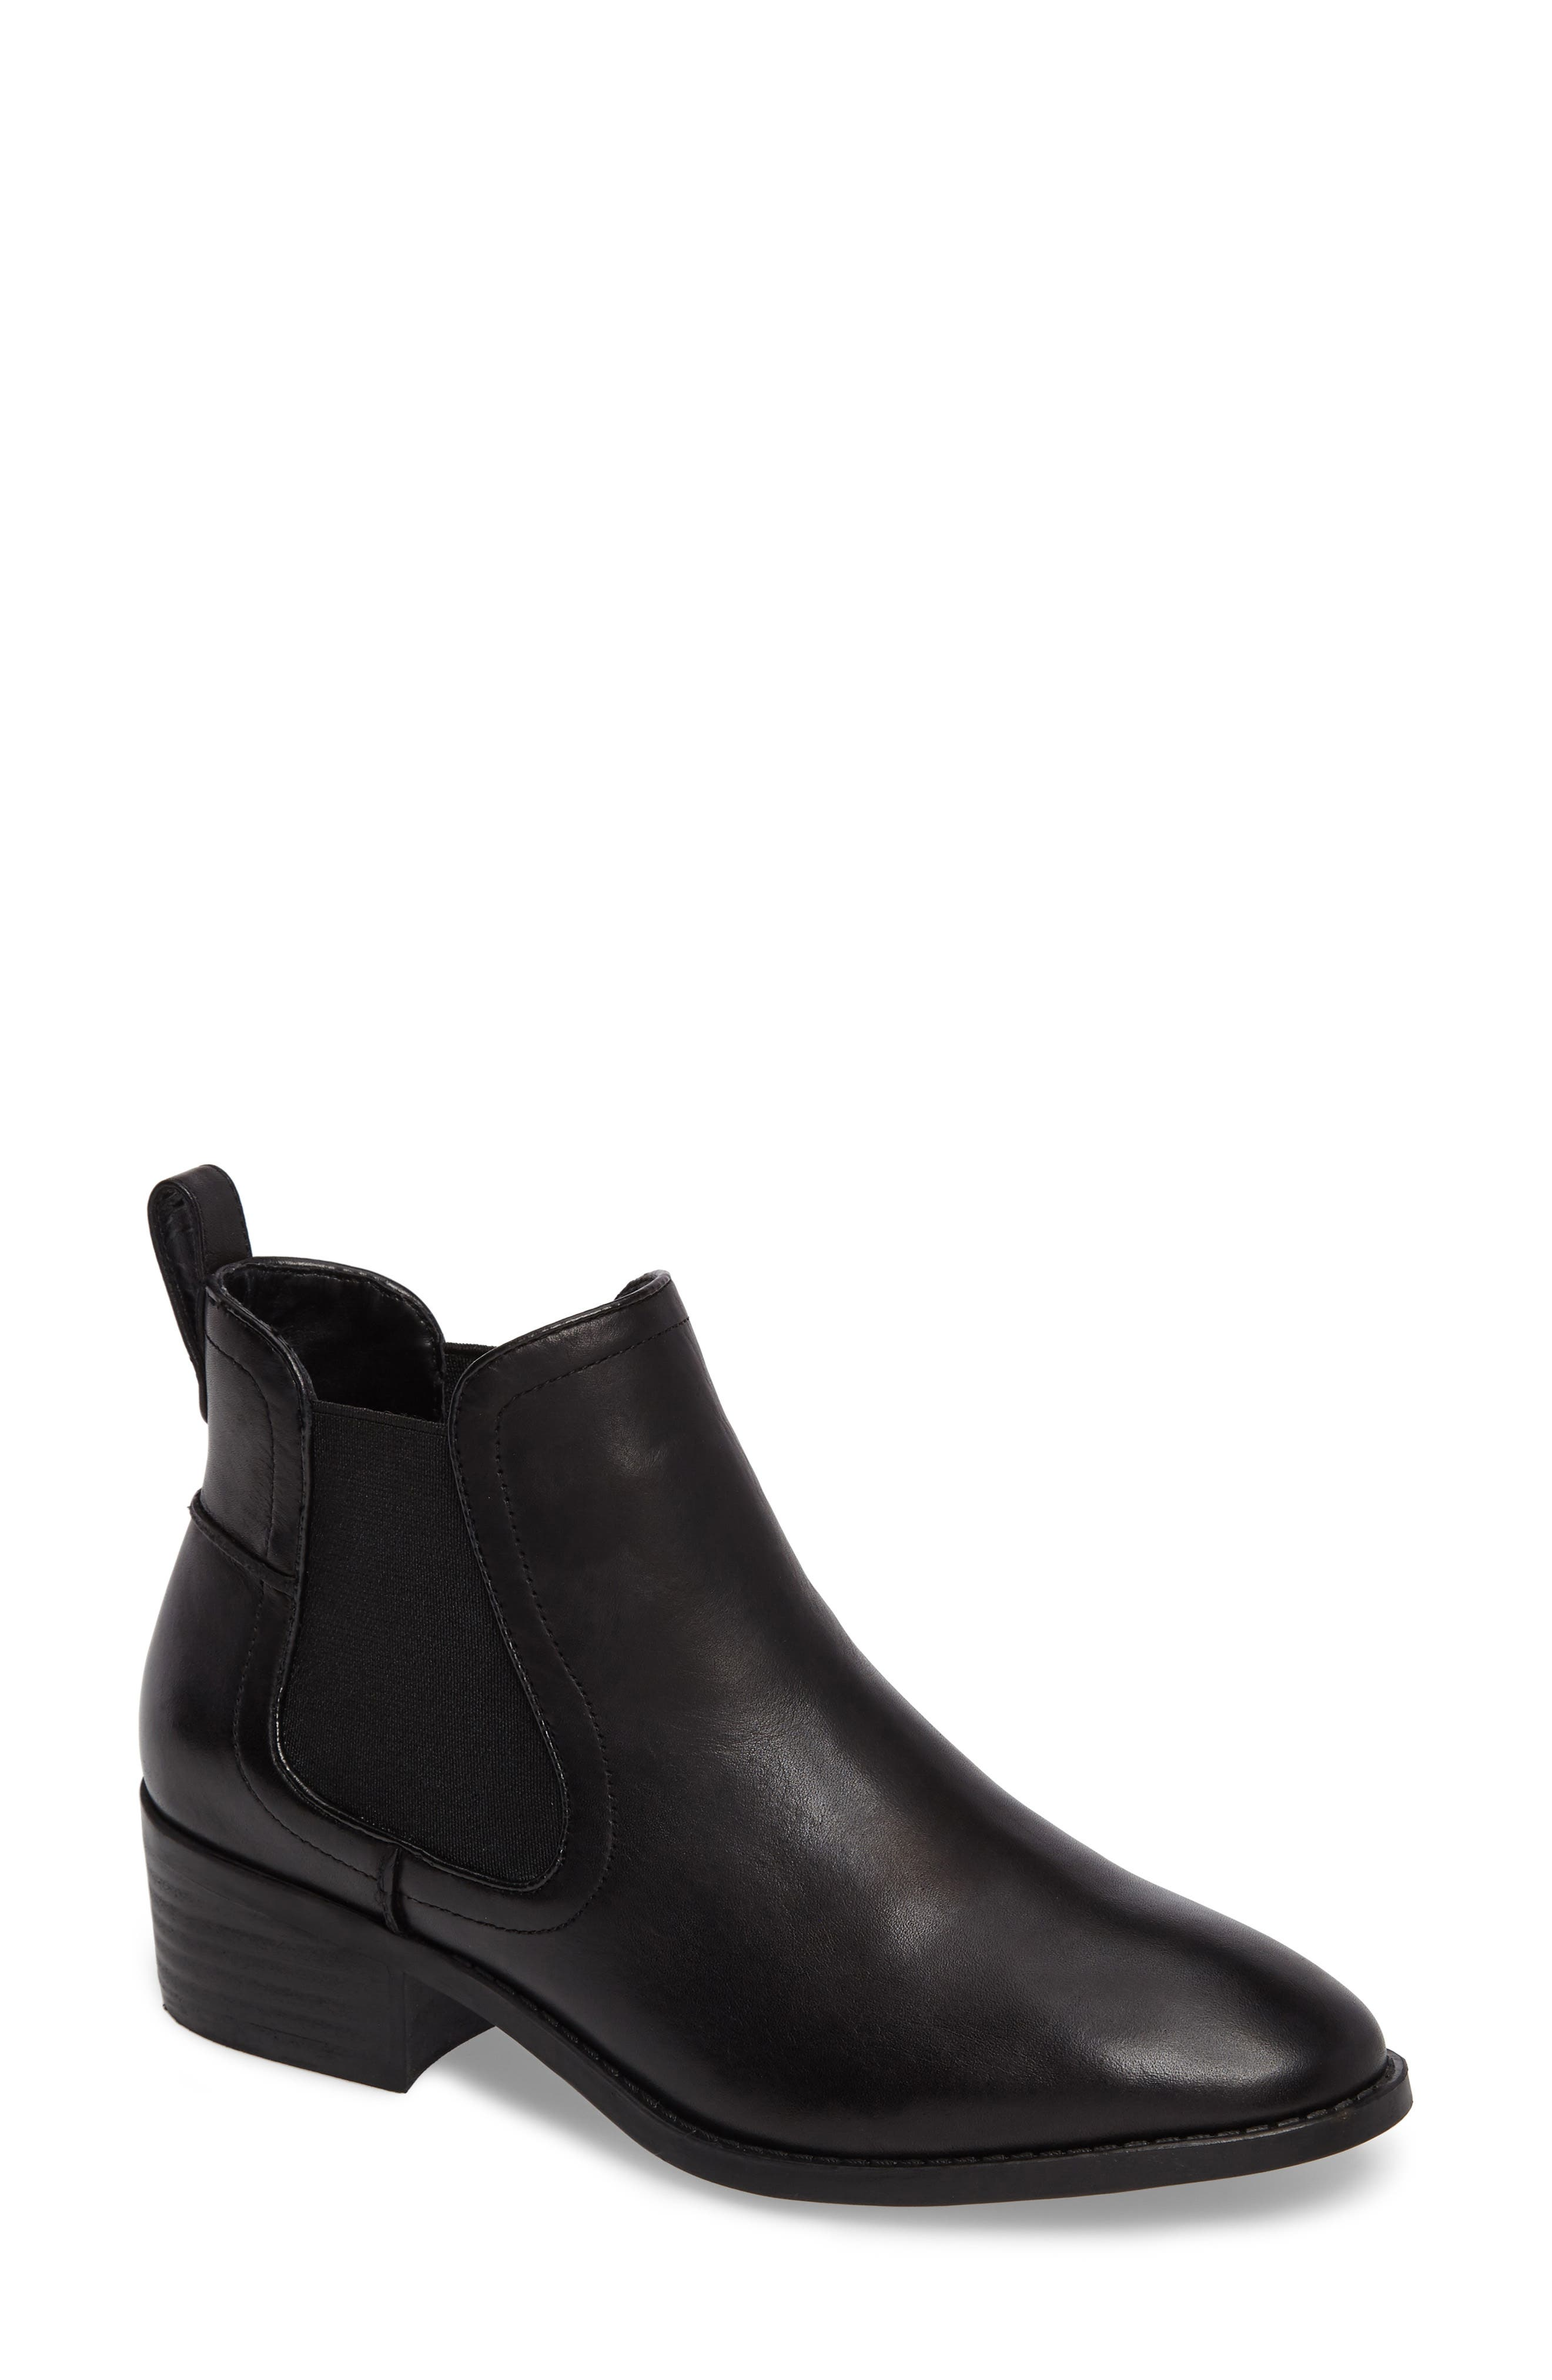 Dicey Chelsea Boot,                         Main,                         color, Black Leather